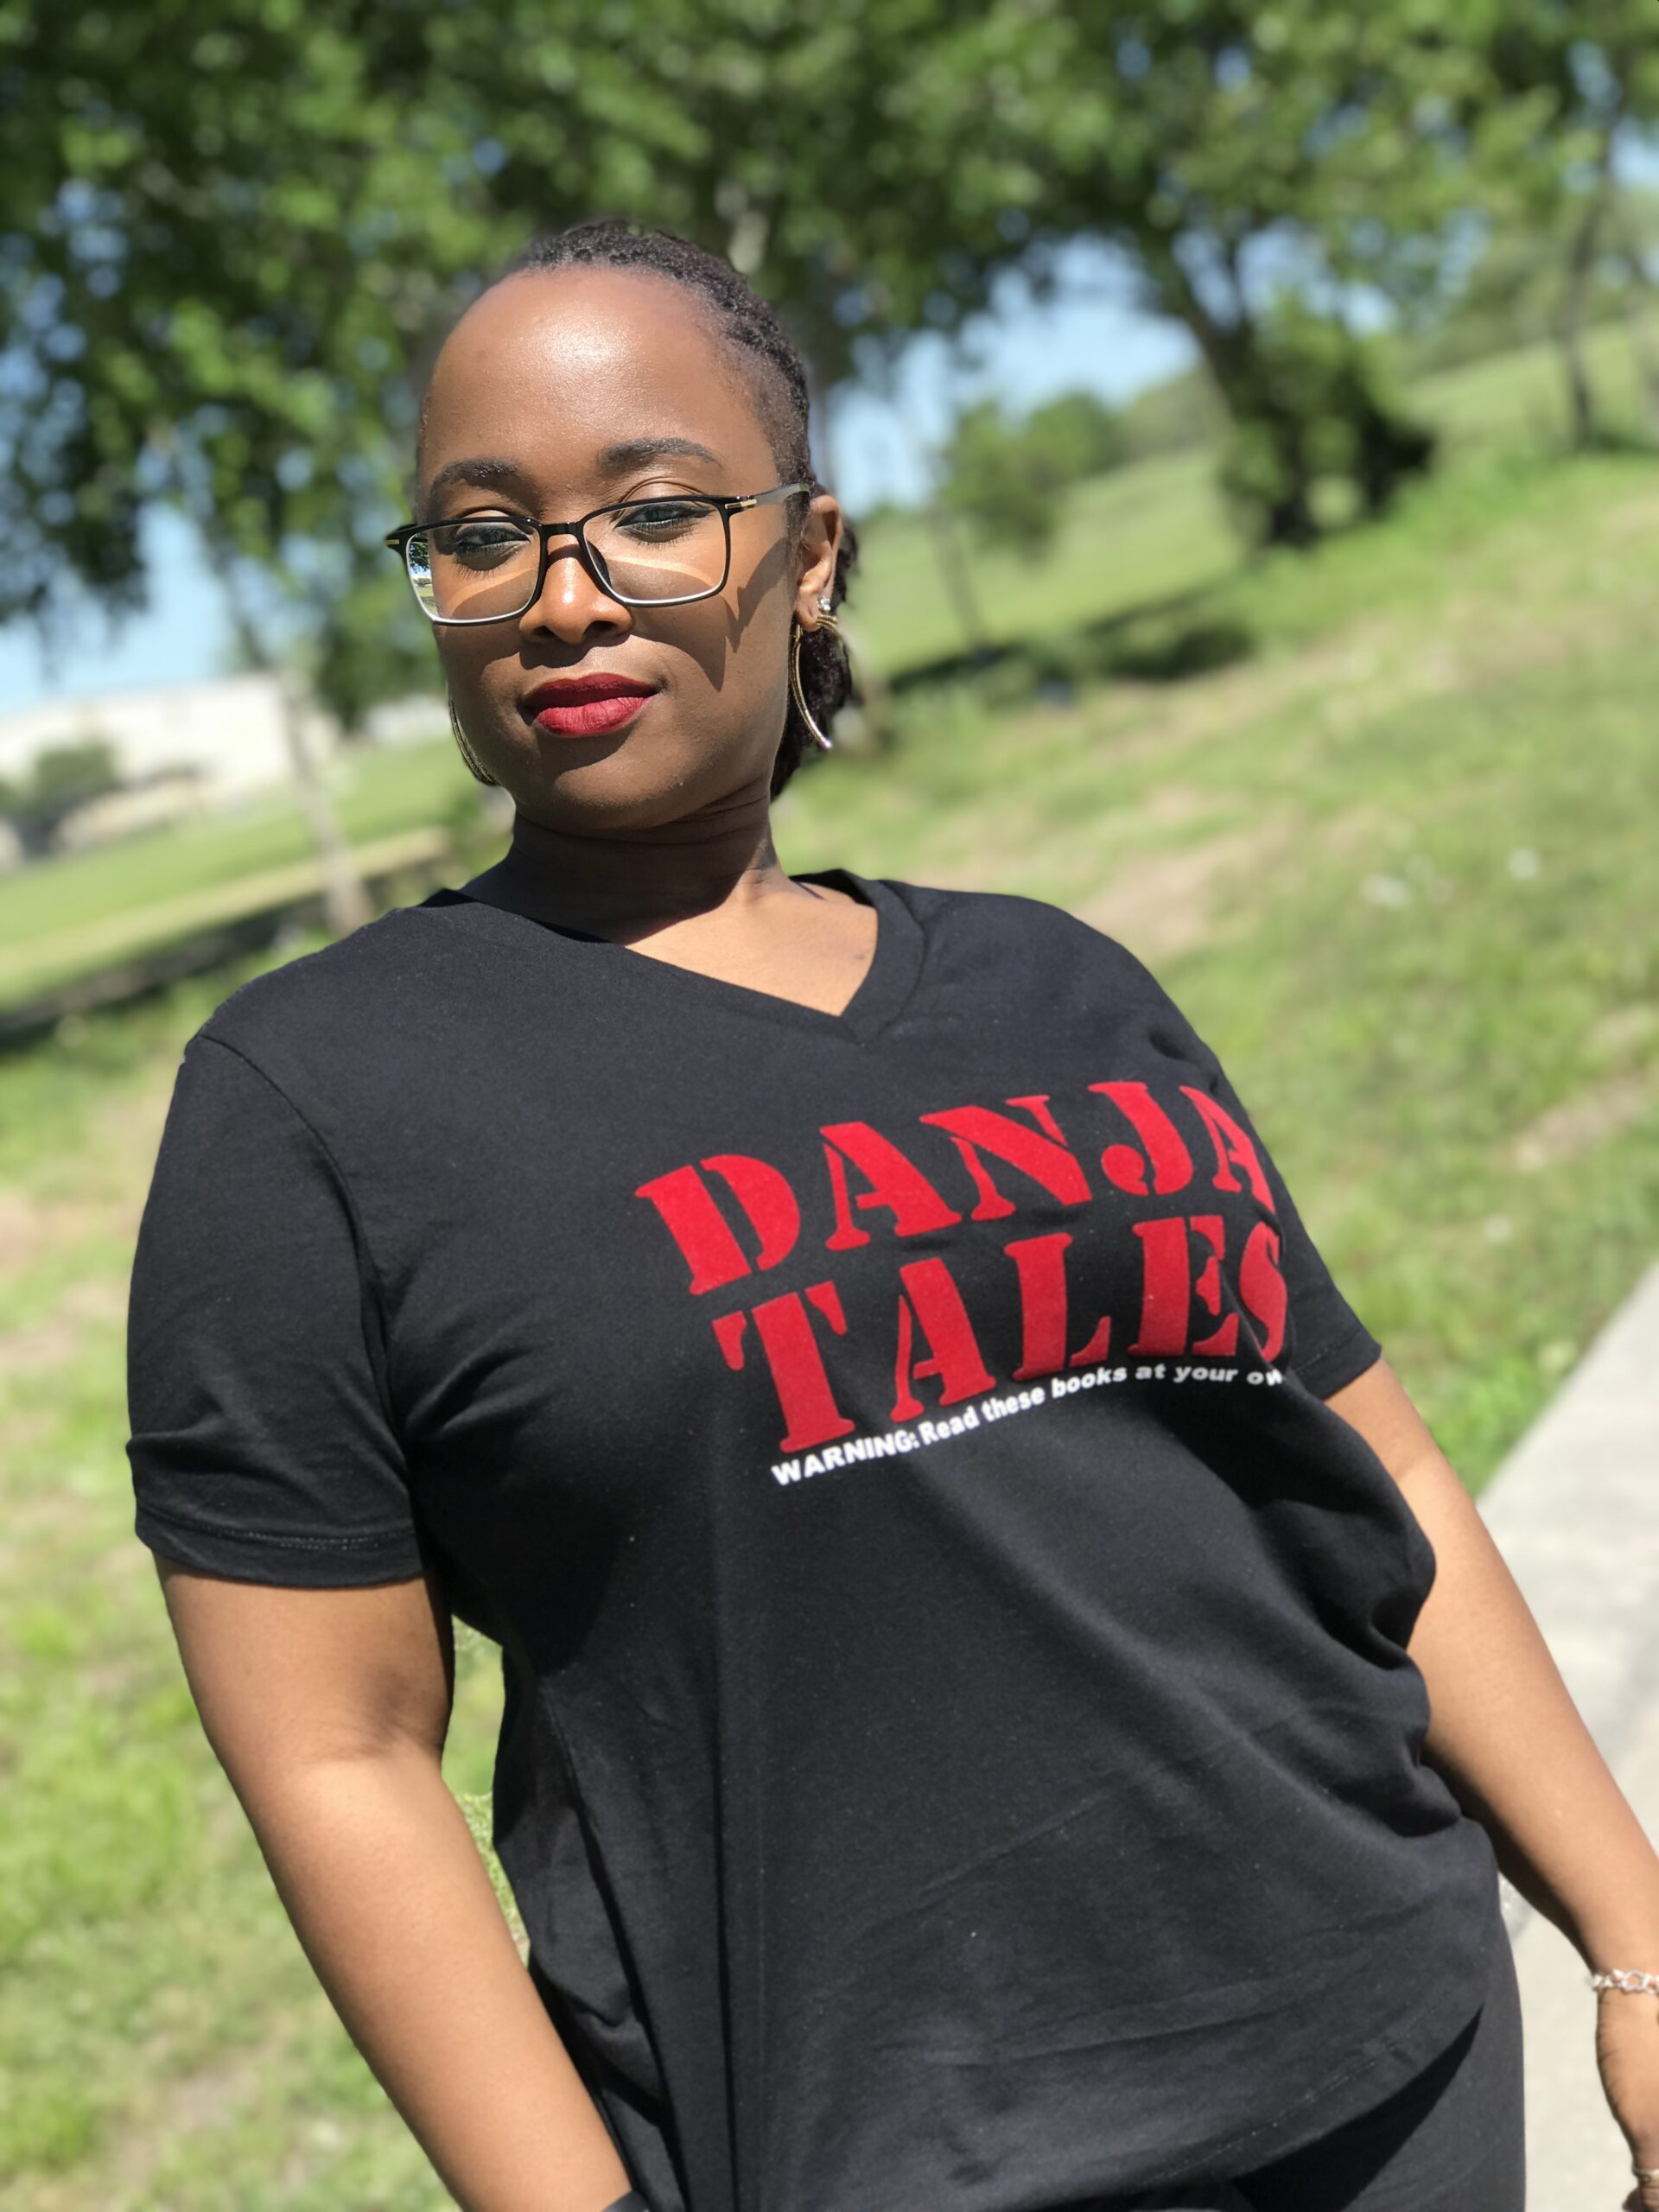 Dana Pittman of Danja Tales Shows Writers It's Time to Write Their Novels